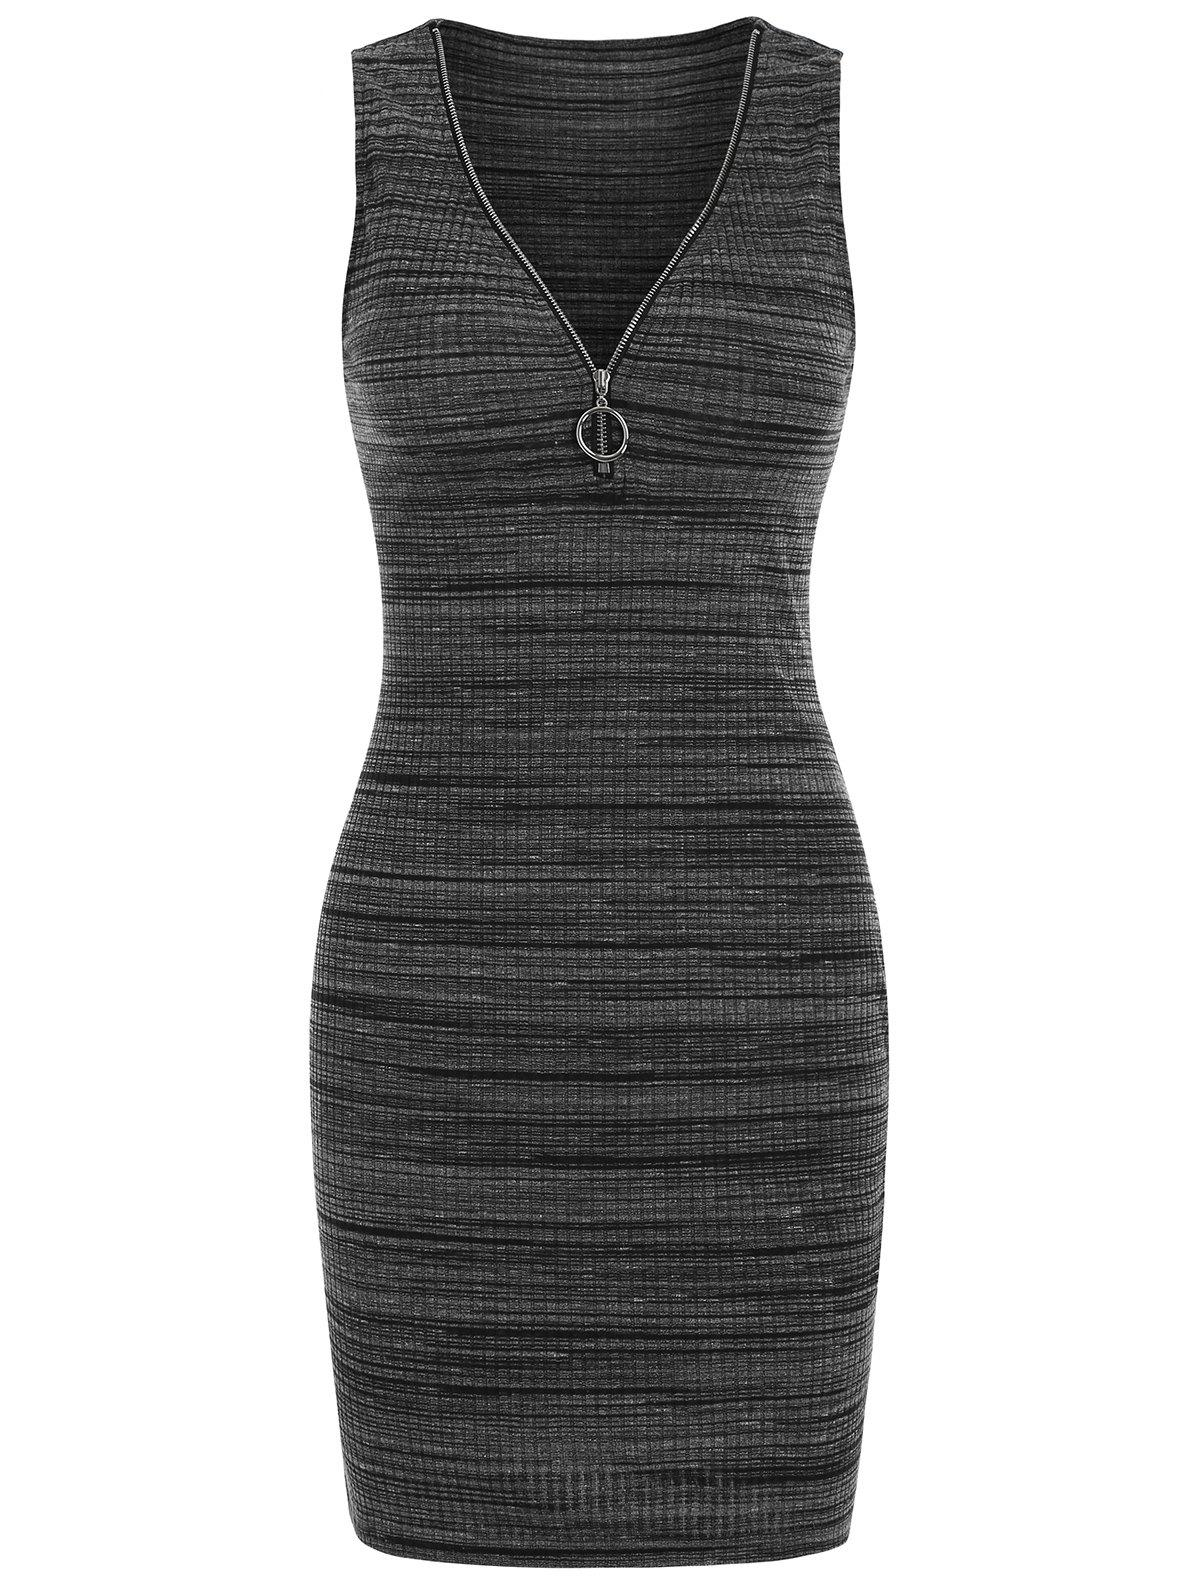 O-ring Pull V Neck Knitted Sleeveless Bodycon Dress - CARBON GRAY L